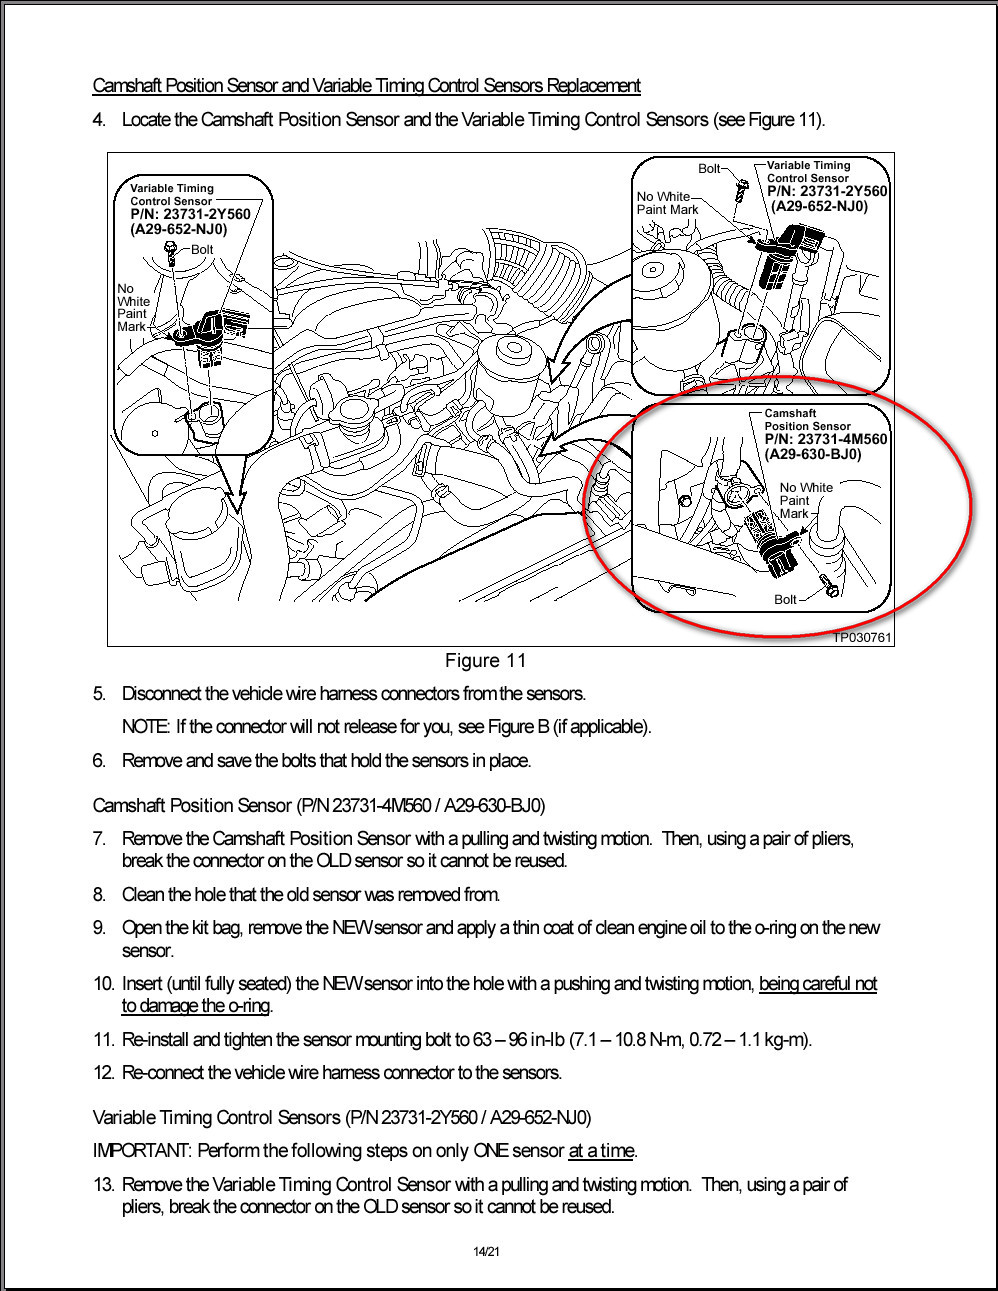 Here Is Some Information On The Recall And Correct Sensor That Should Have Been Replaced There Are 4 Possibilities It Not Uncommon For Someone To